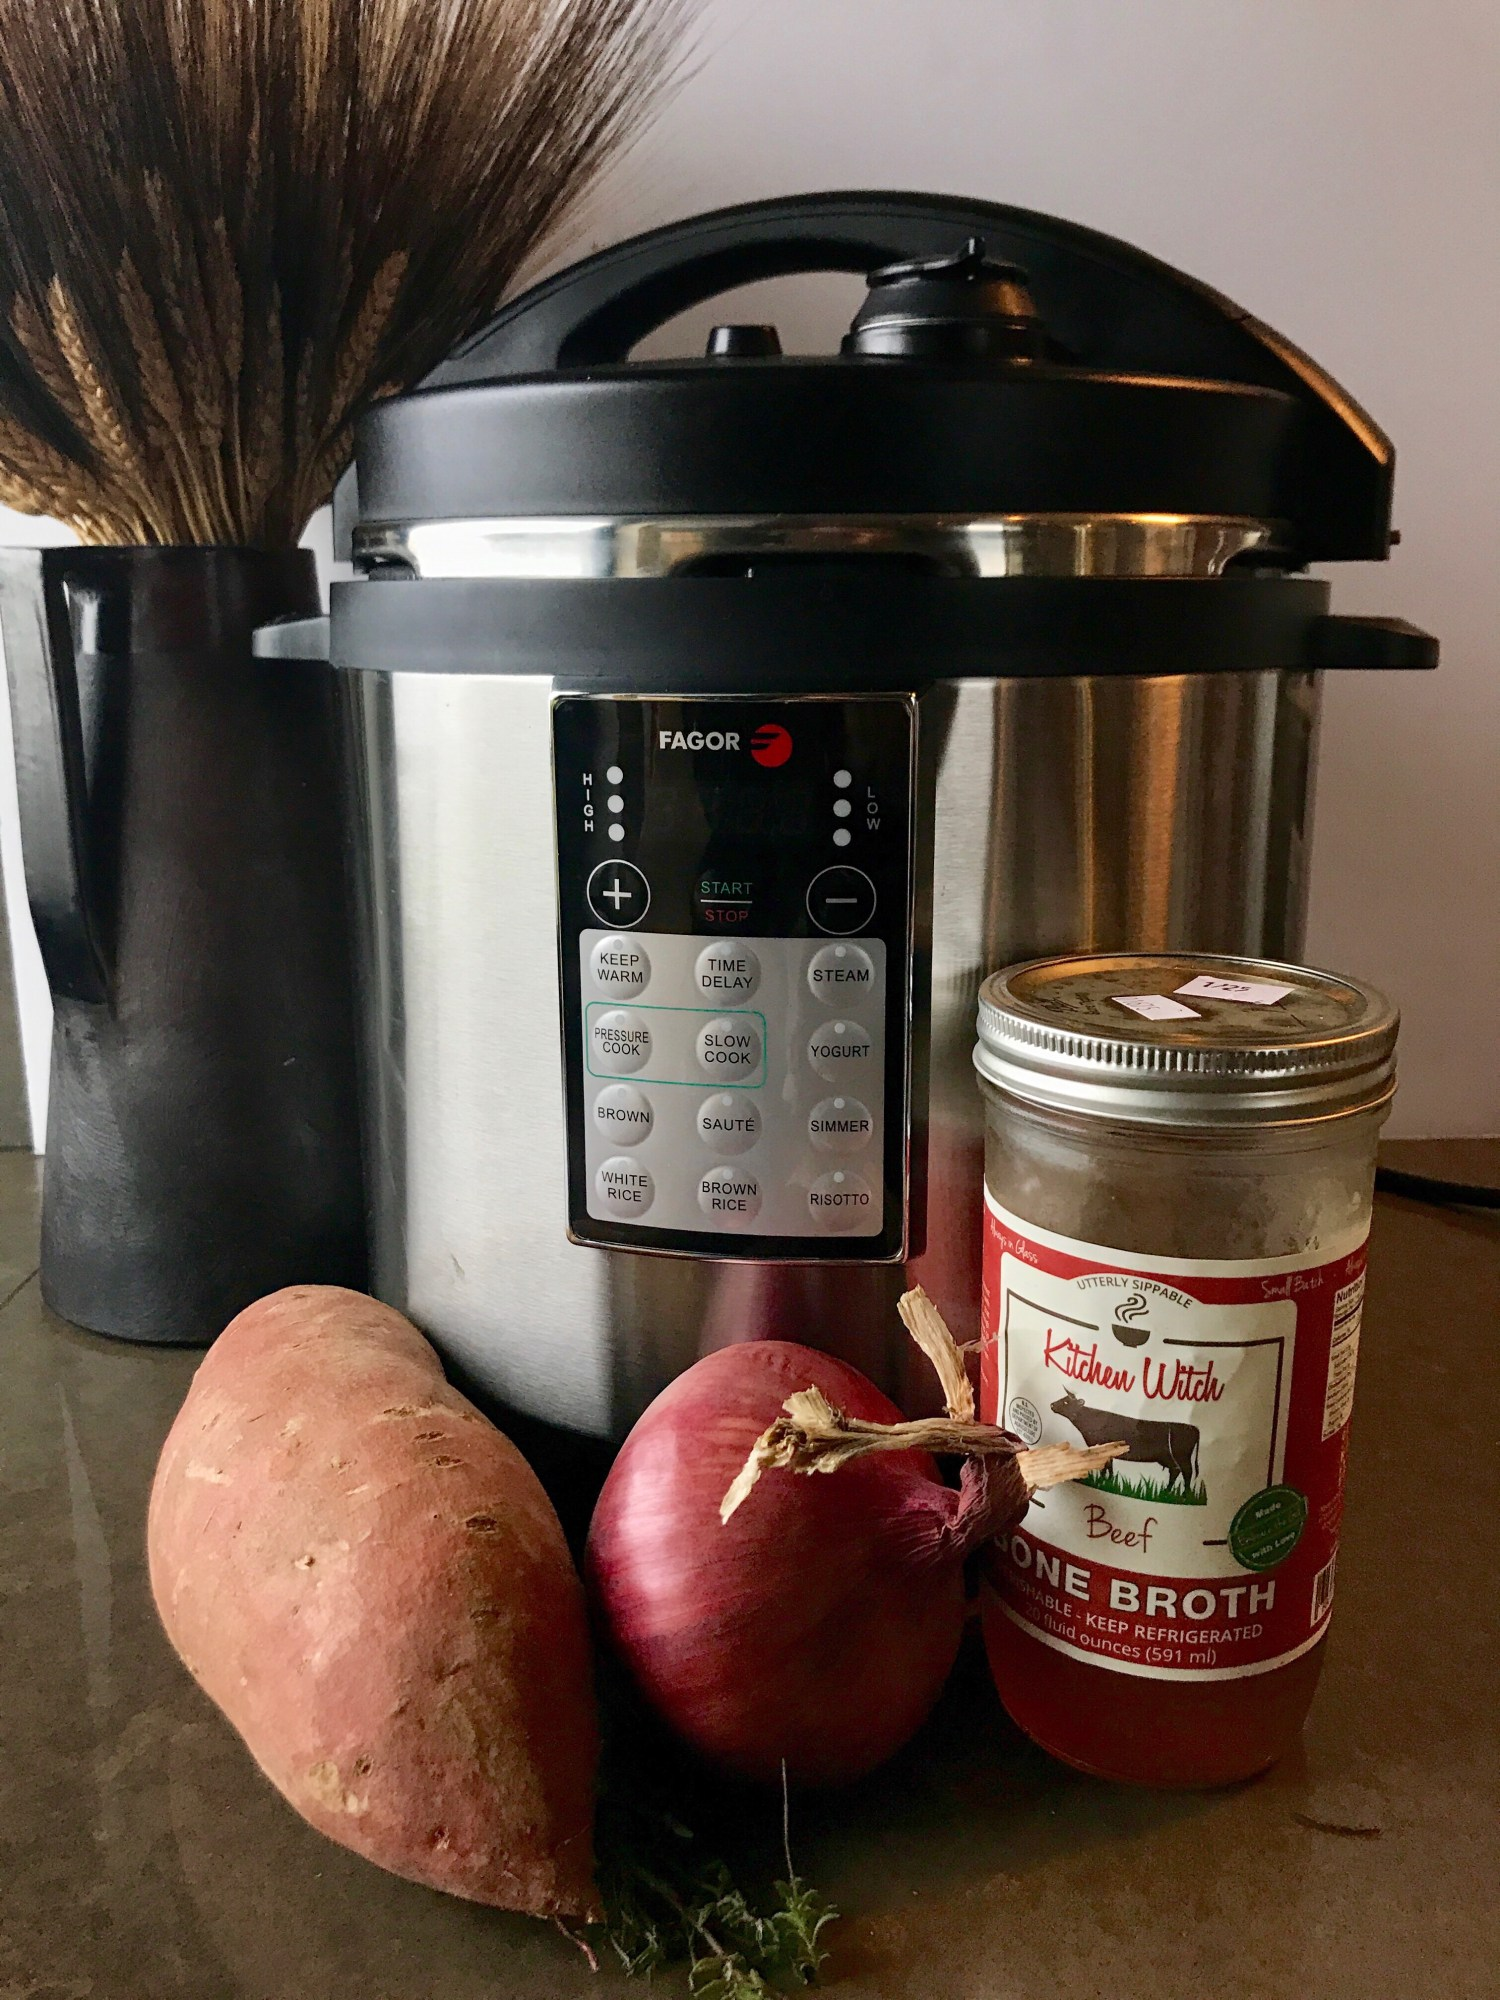 paleo sweet potato chili ingredients.jpg